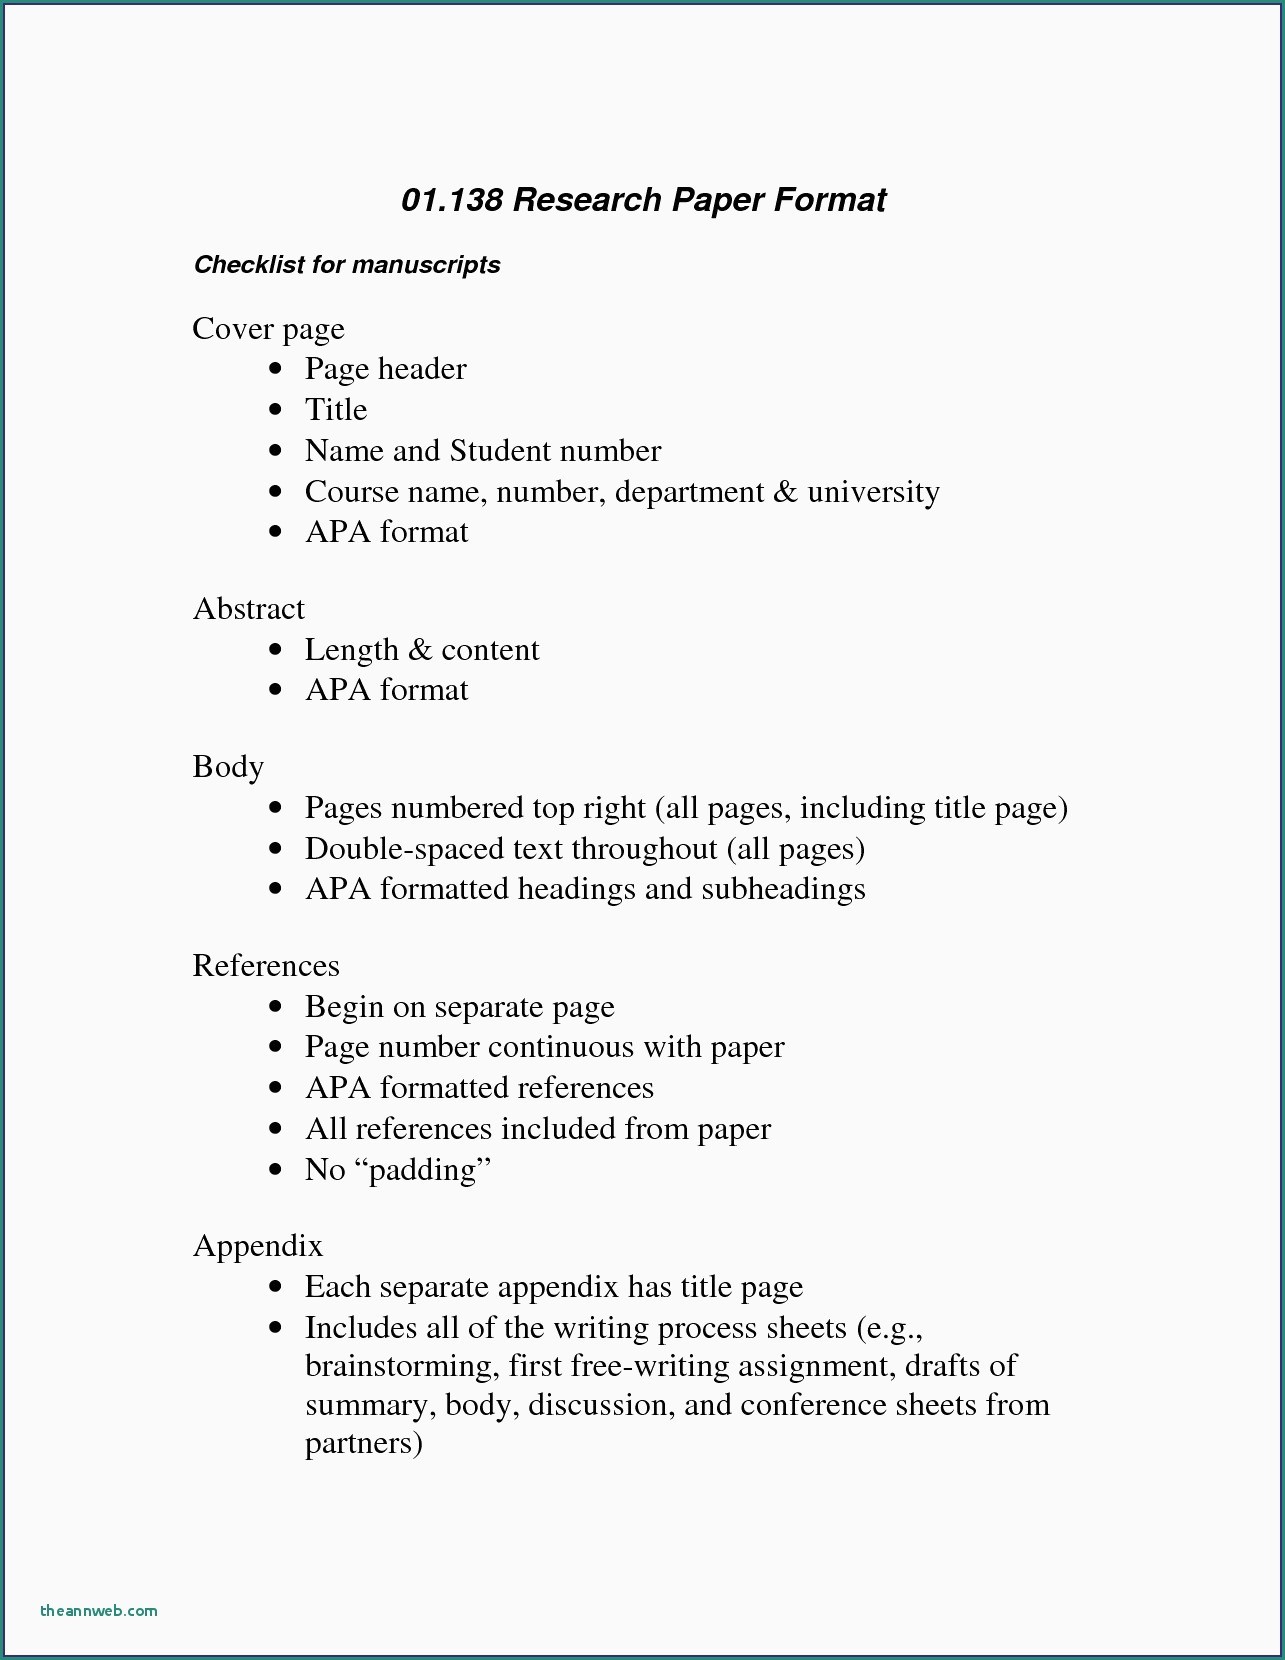 026 Apa Format For Research Paper Sample Psychology Elegant Essay New Template Resume Formidable Style Example 6th Edition Outline Full